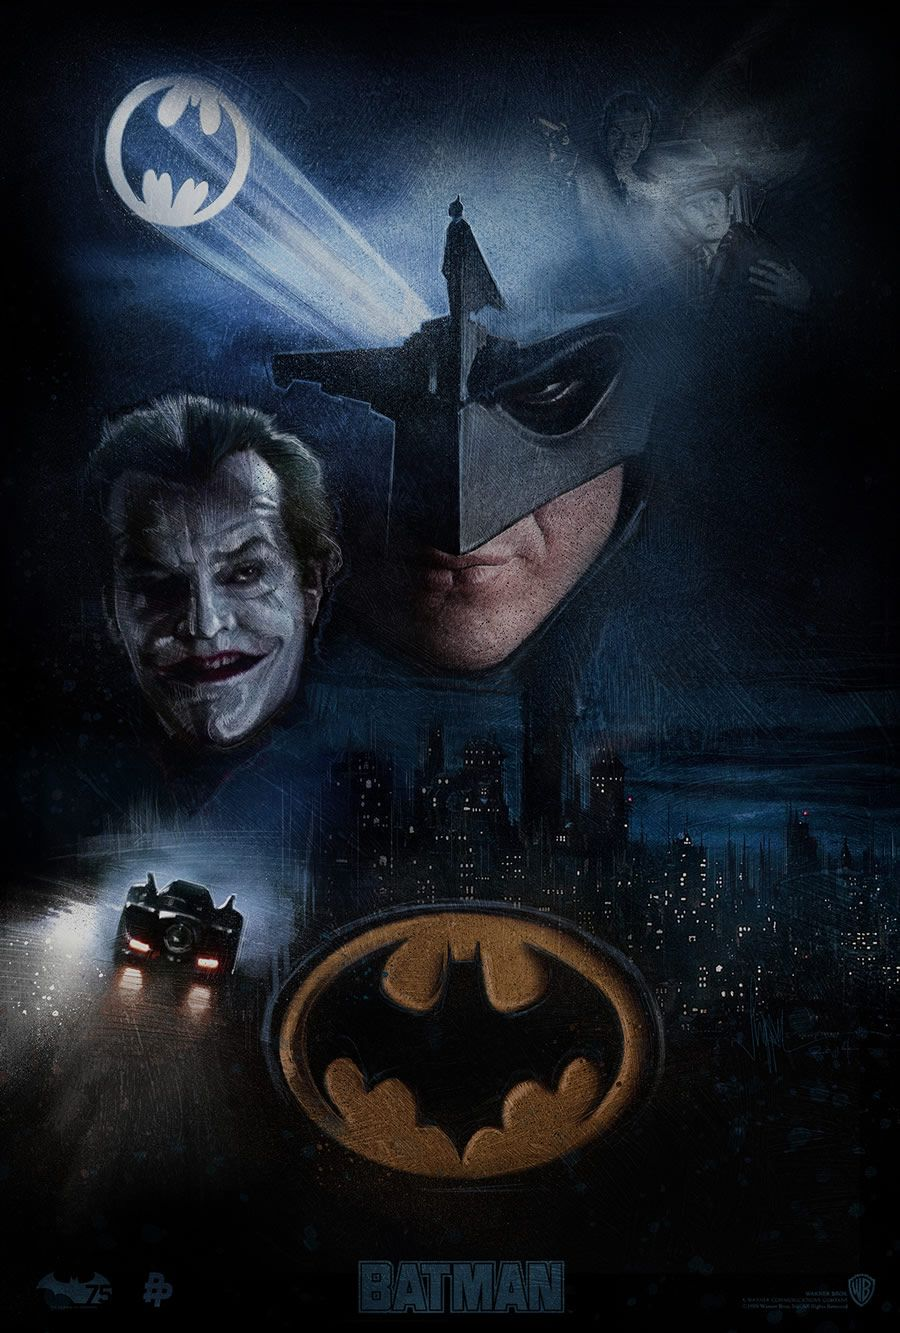 Paul shipper movie posters 3